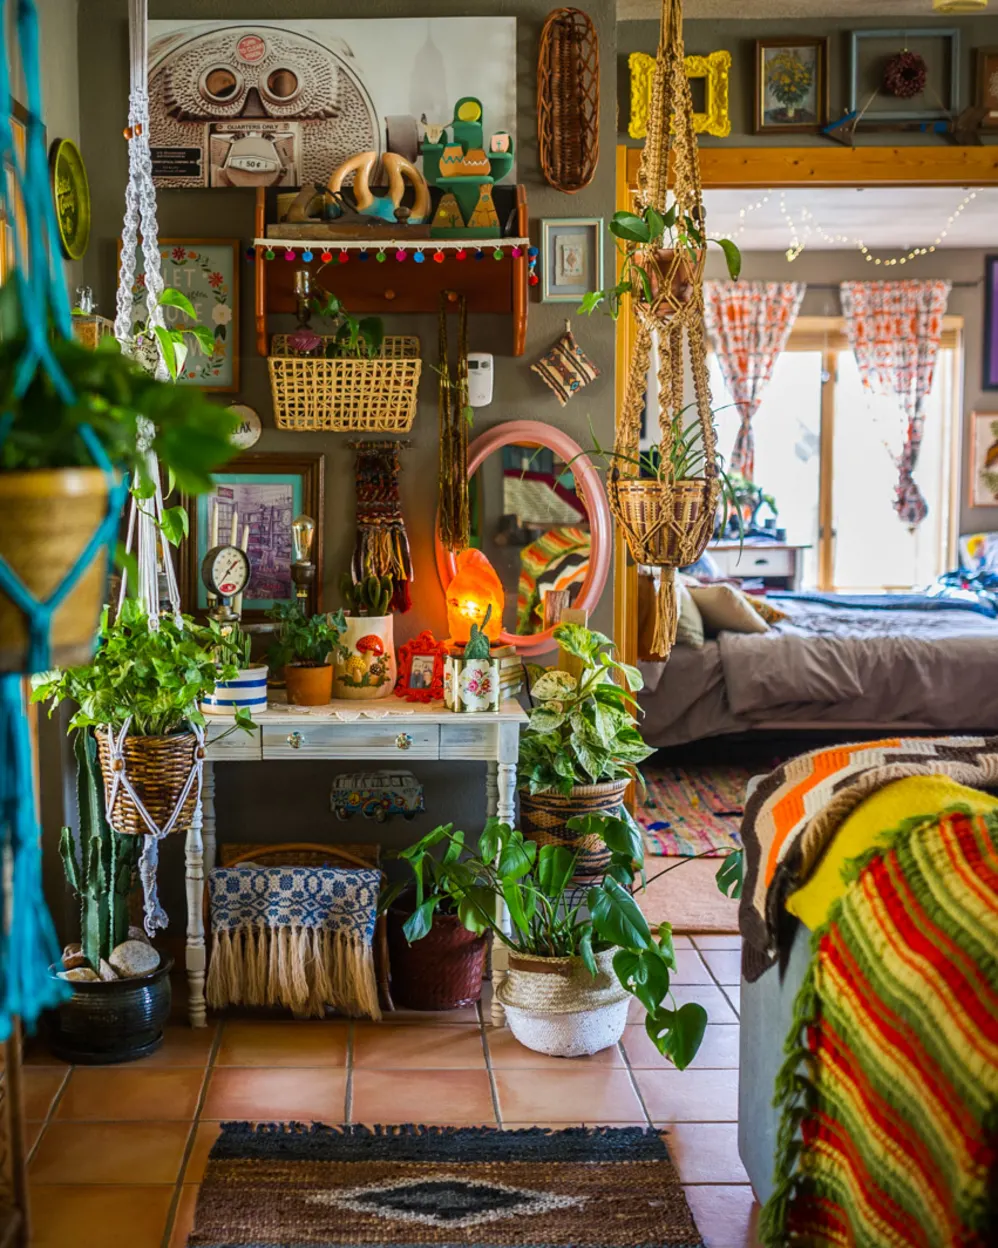 The Most Maximalist Bohemian Home Just Might Be on This ...